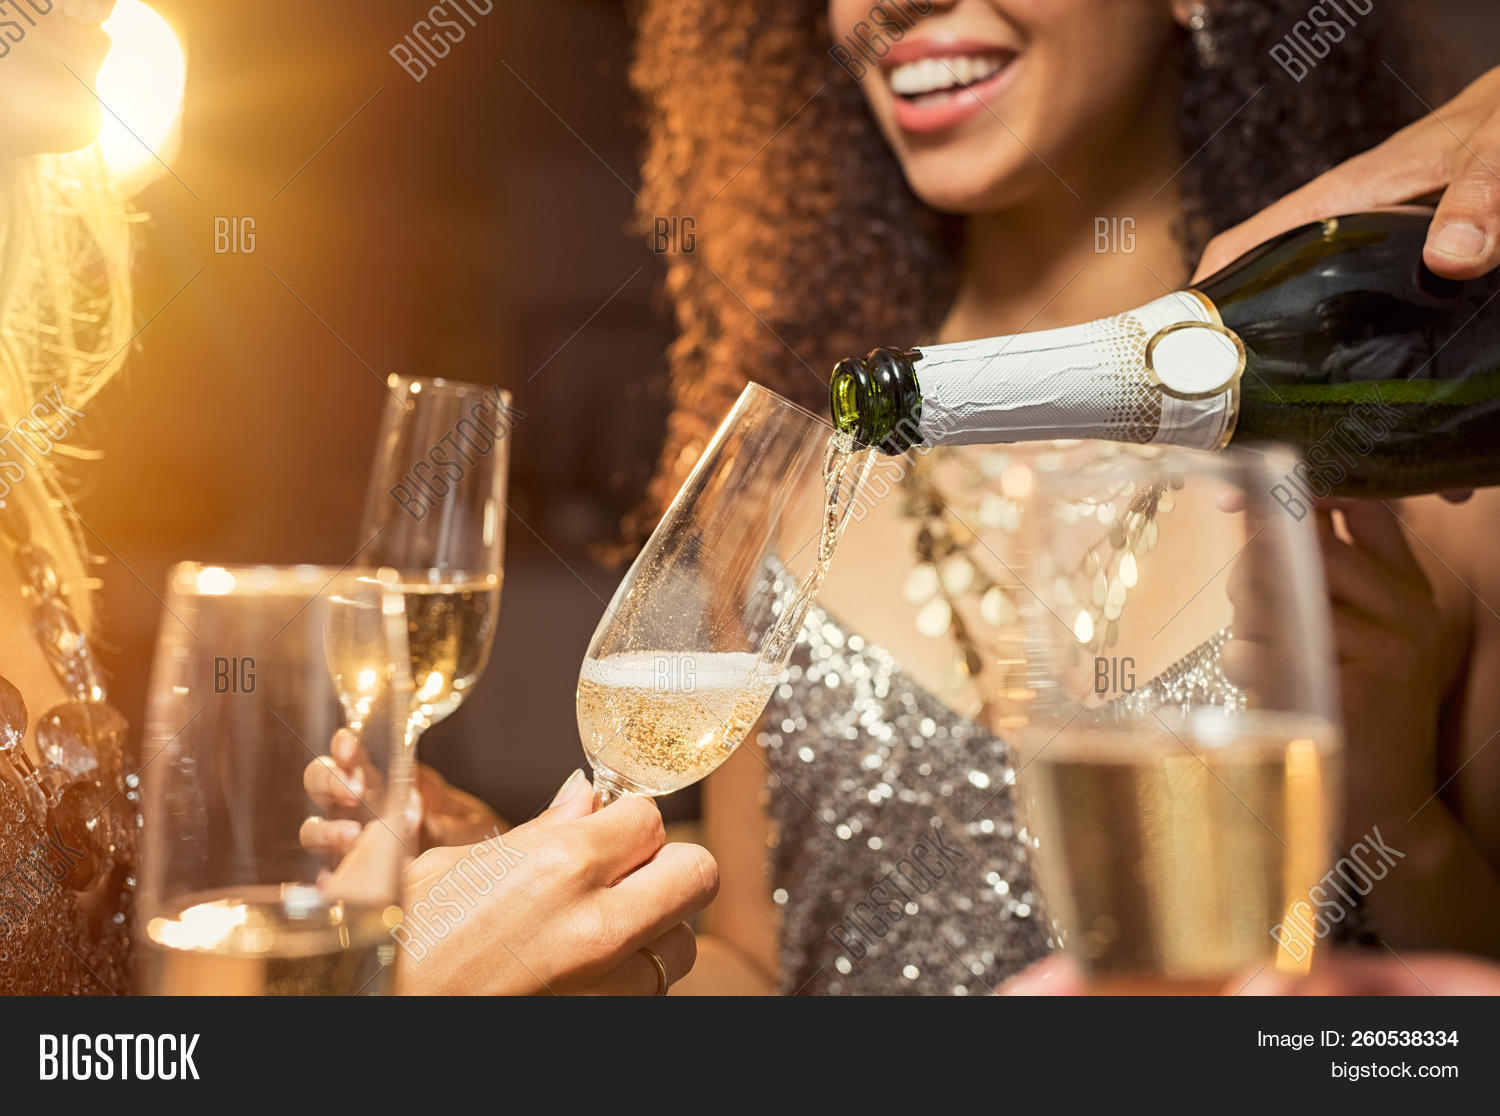 Hand pouring champagne from bottle into glasses with friends around him. Closeup of hand pouring whi